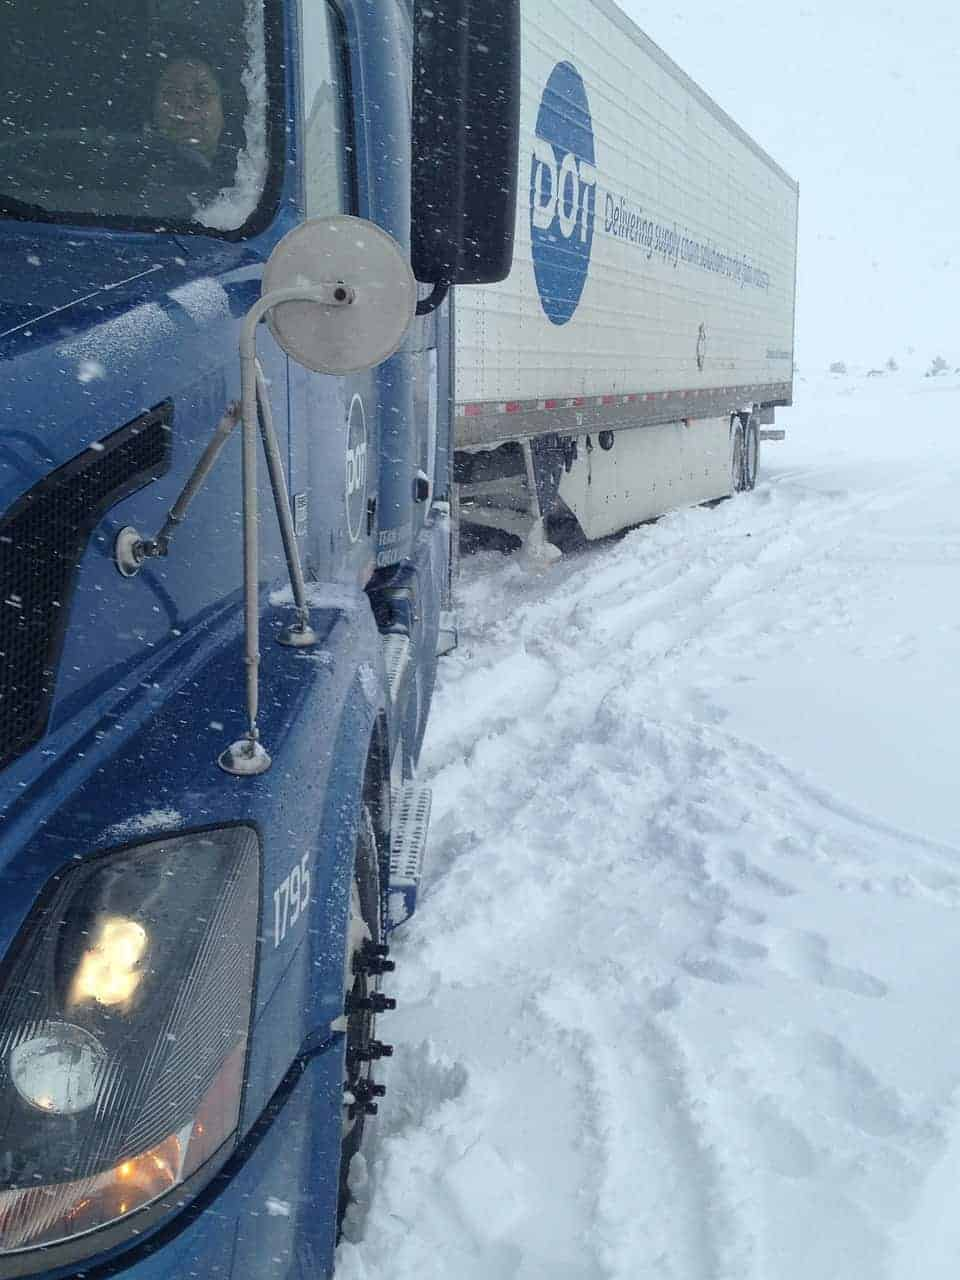 Delivery truck stuck in snow